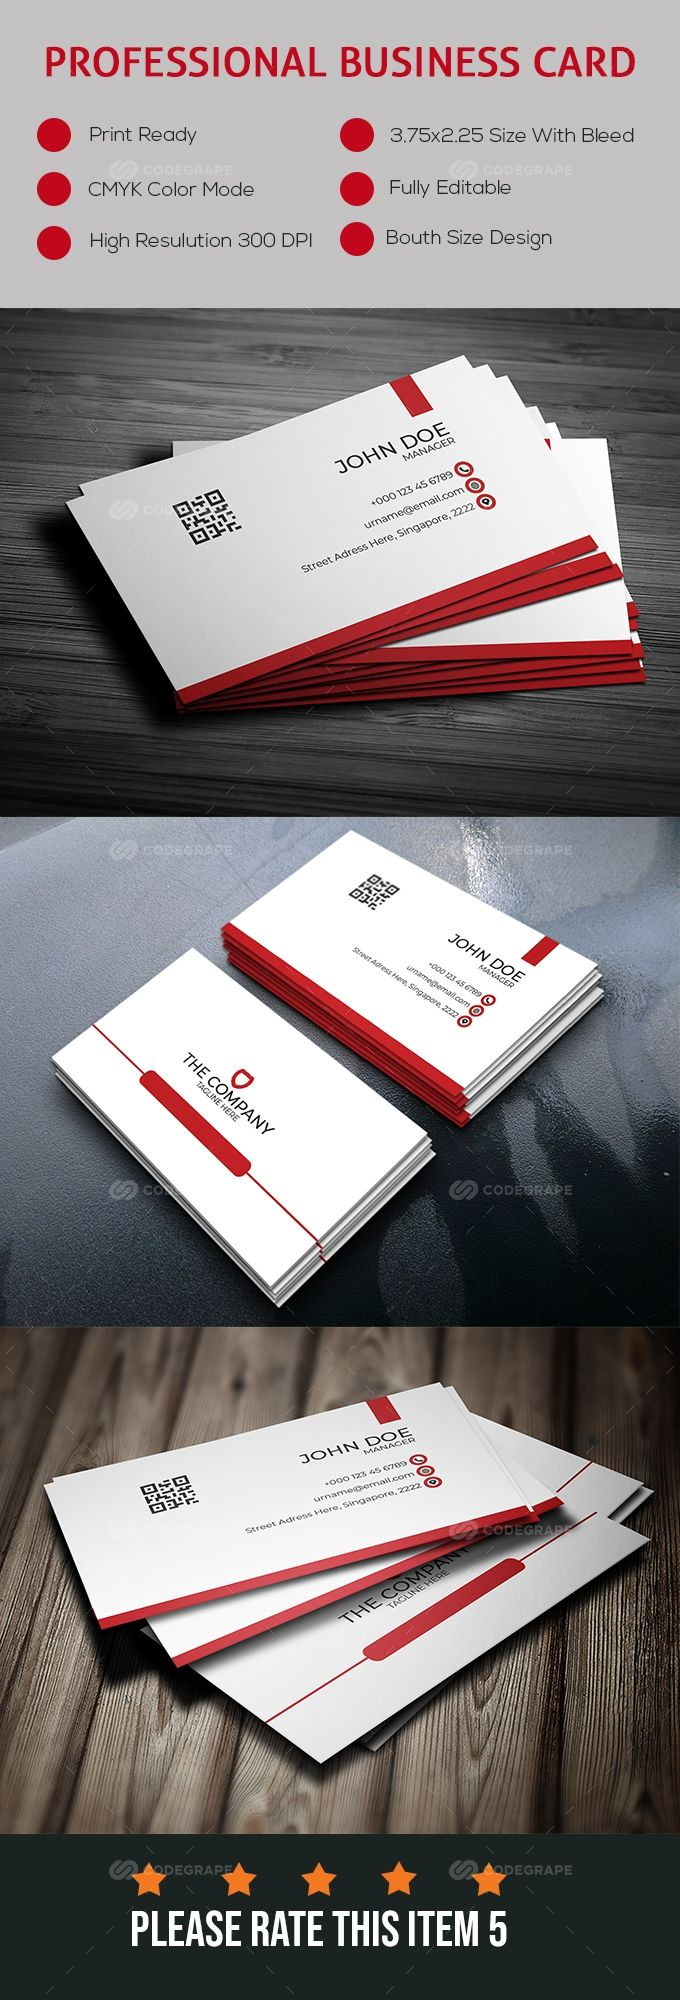 Professional Business Card Professional Business Cards Printing Business Cards Business Cards